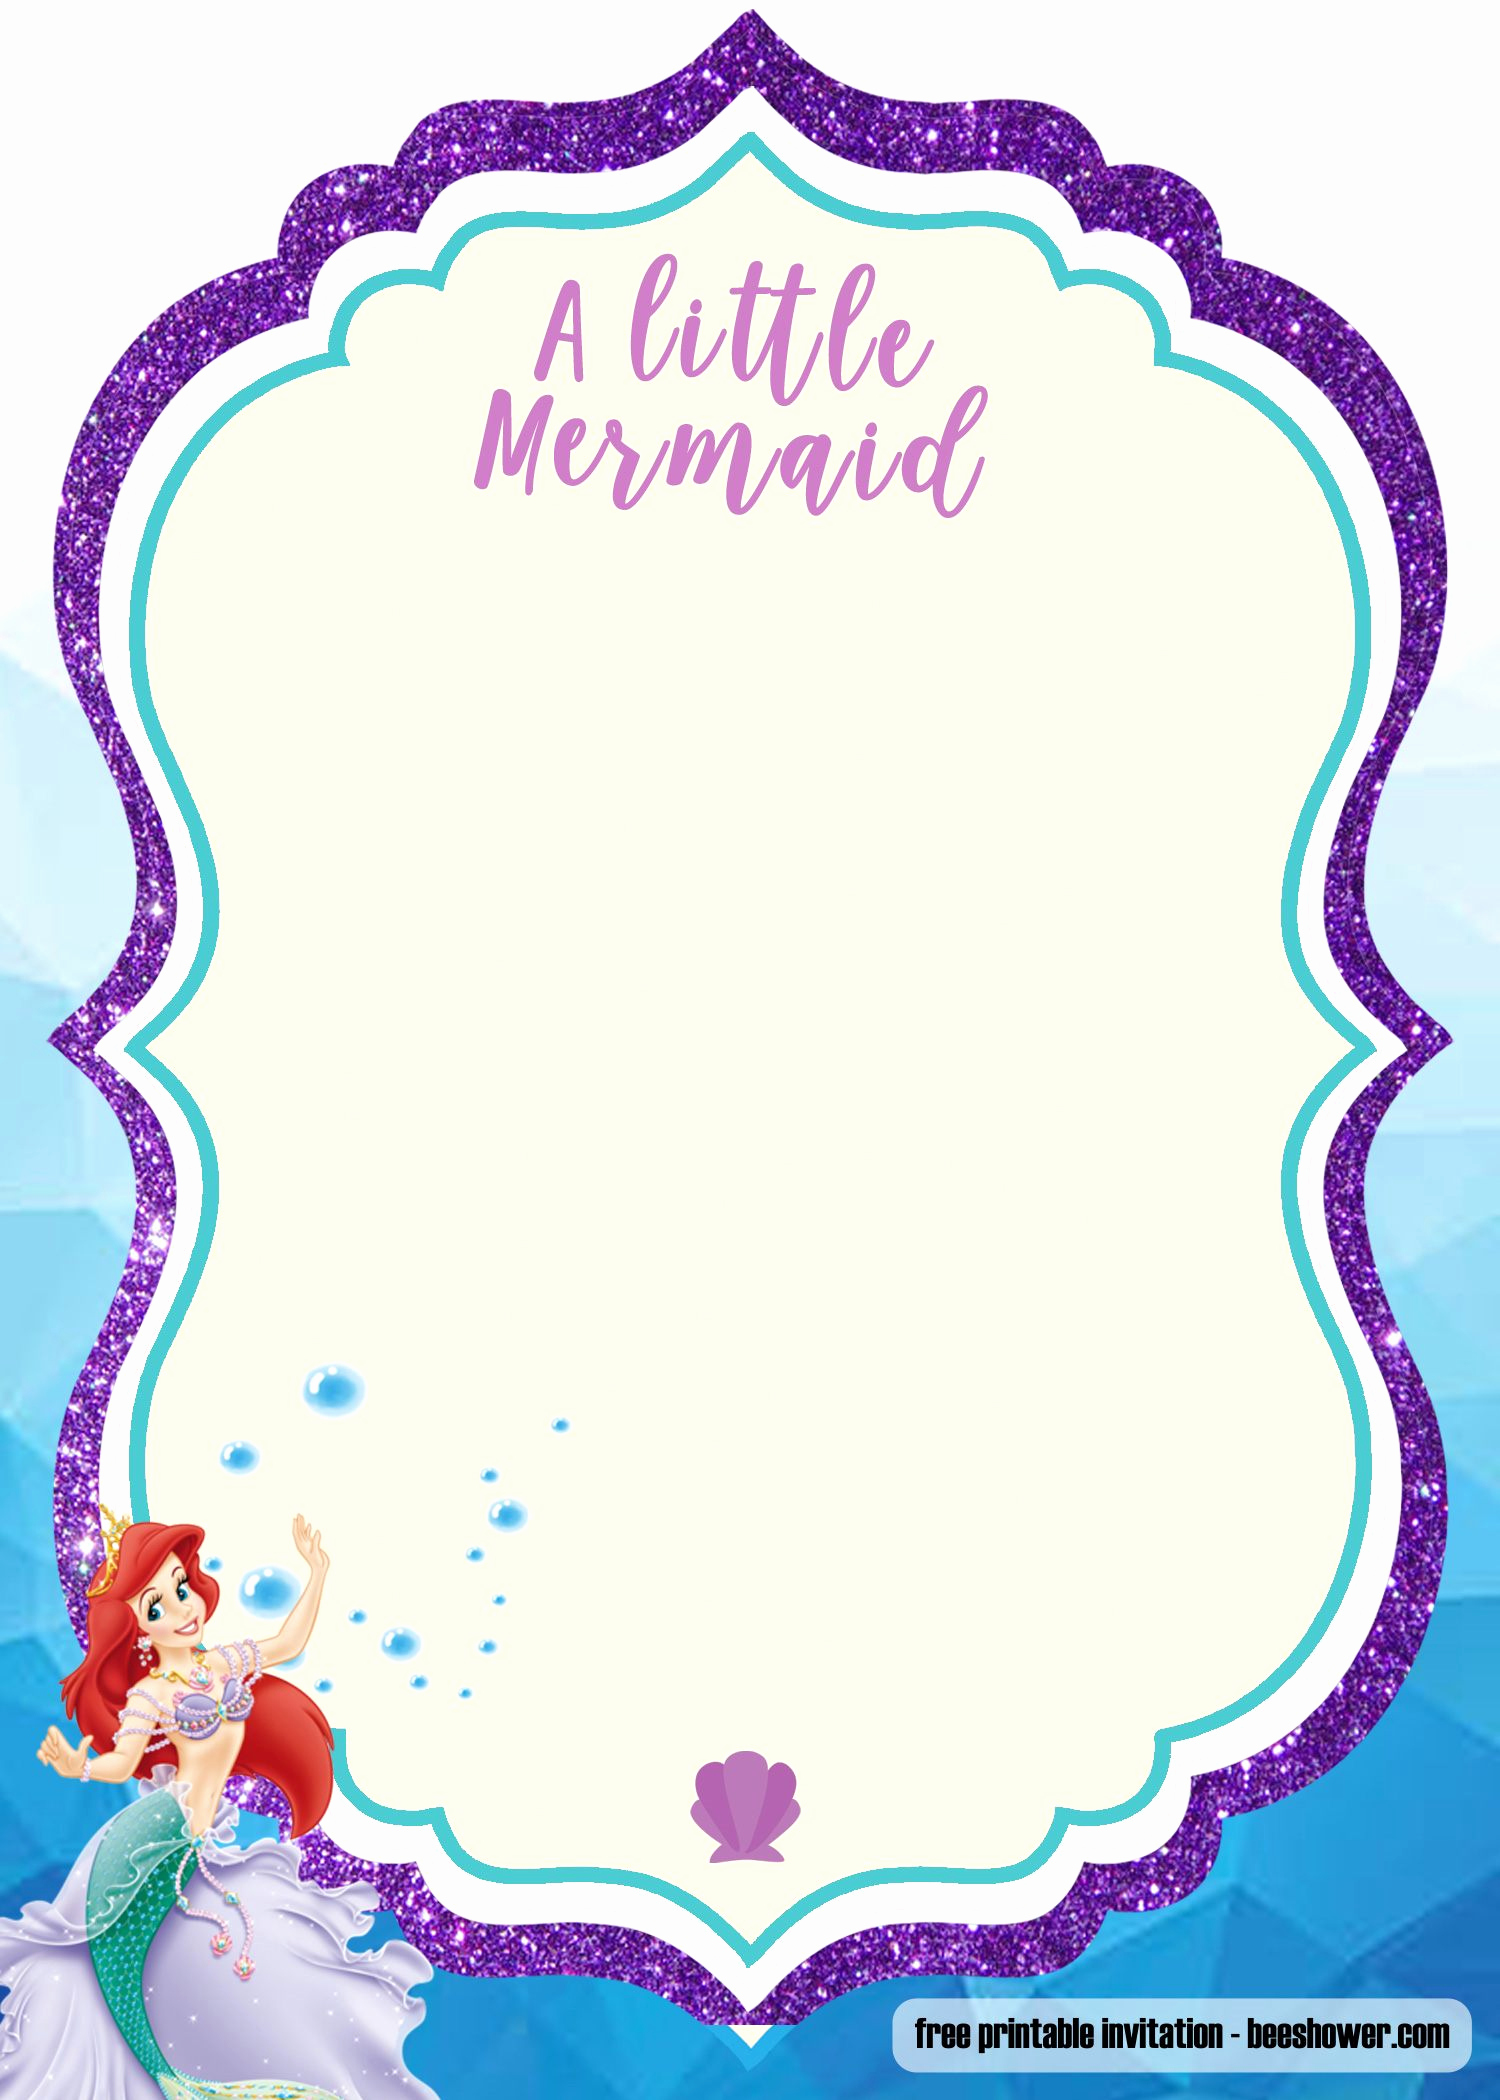 Free Mermaid Invitation Template Fresh Free Printable Mermaid Baby Shower Invitation Templates